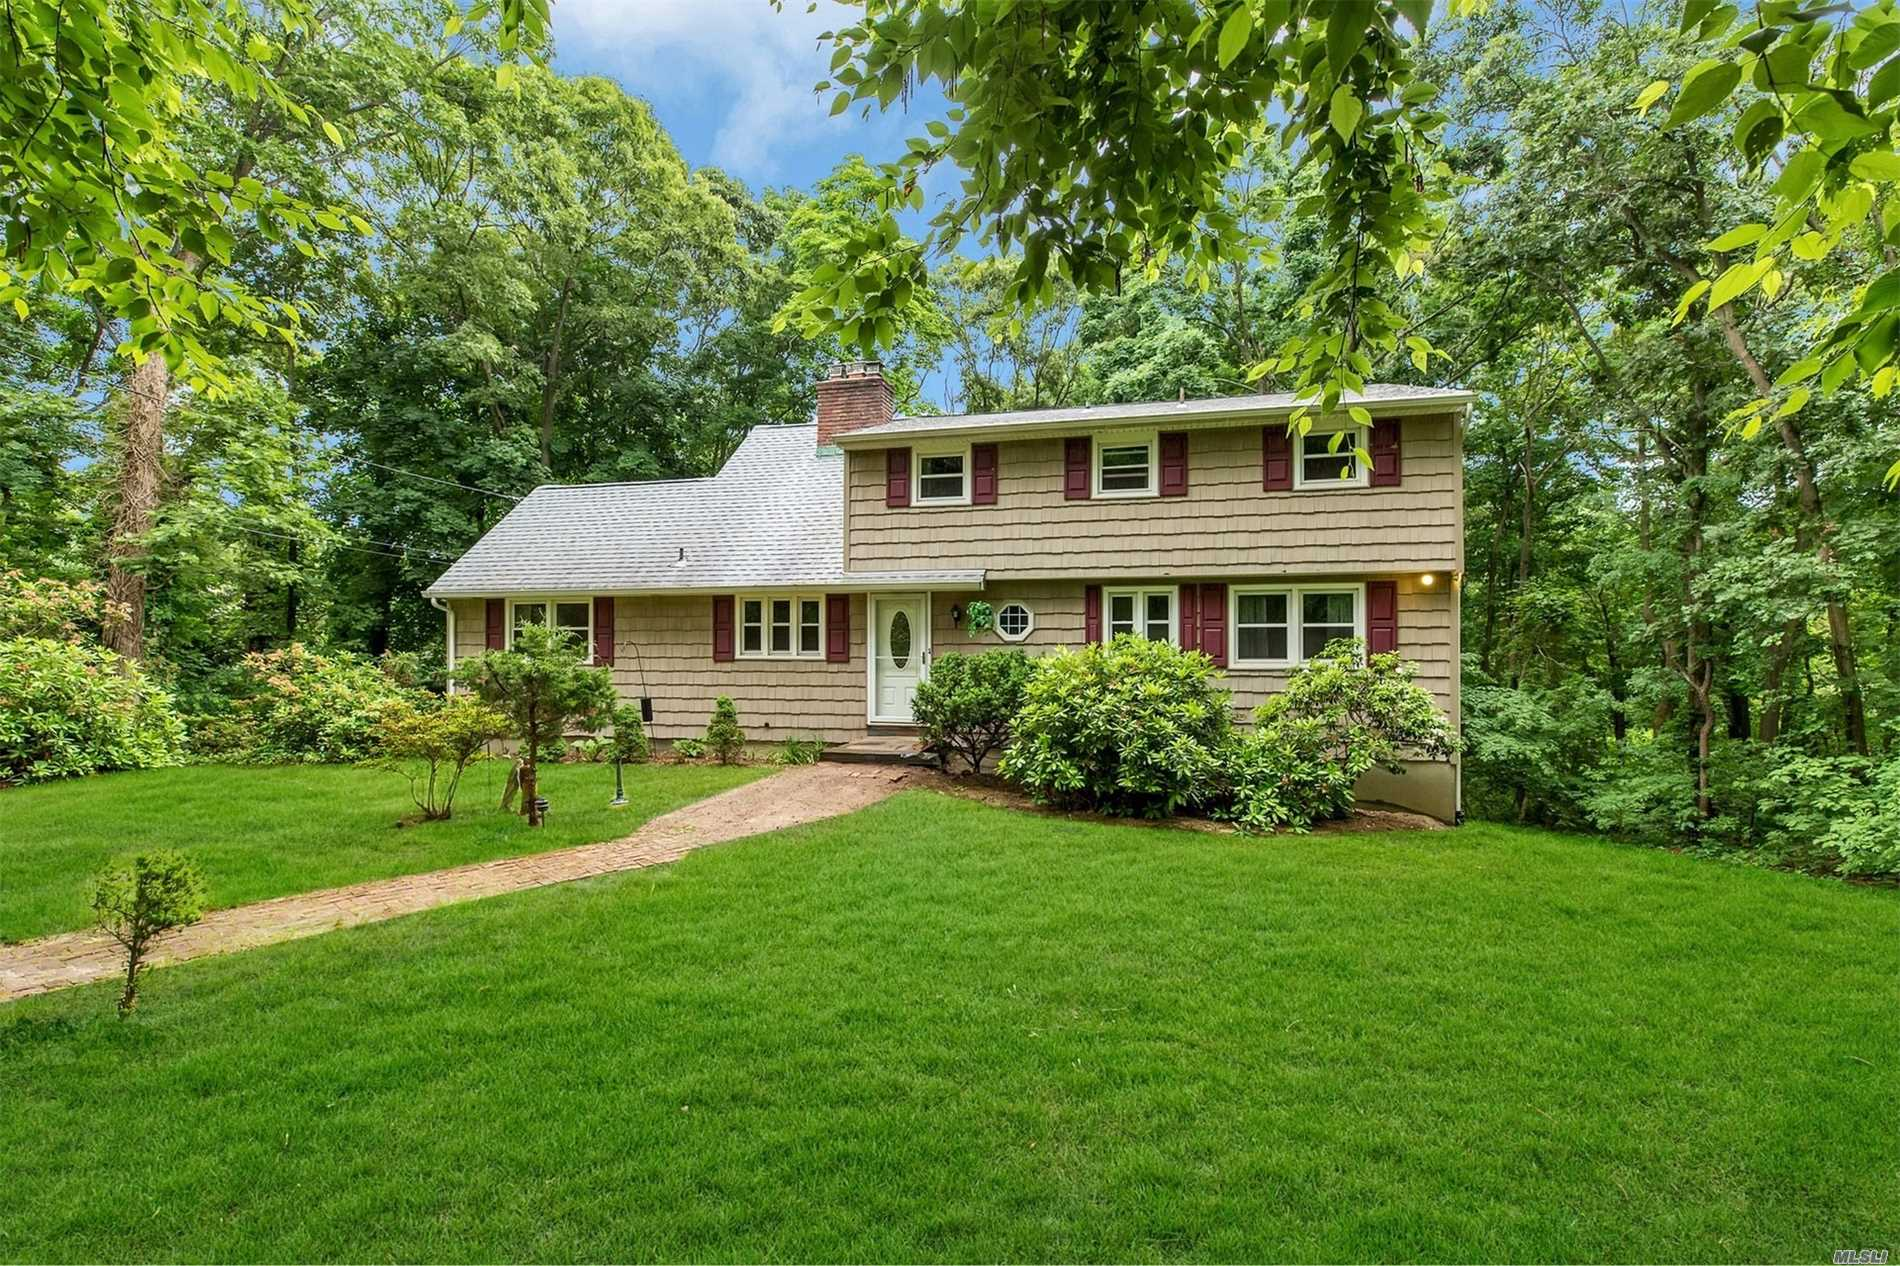 Wonderful Spacious Family Home In Private Cul De Sac With Very Low Taxes In School District #4. Home Has Very Large Principal Rooms, Huge Walkout Lower Level With Windows Overlooking Secluded Backyard. Opportunity Here To Make This Your Next Dream Home!!